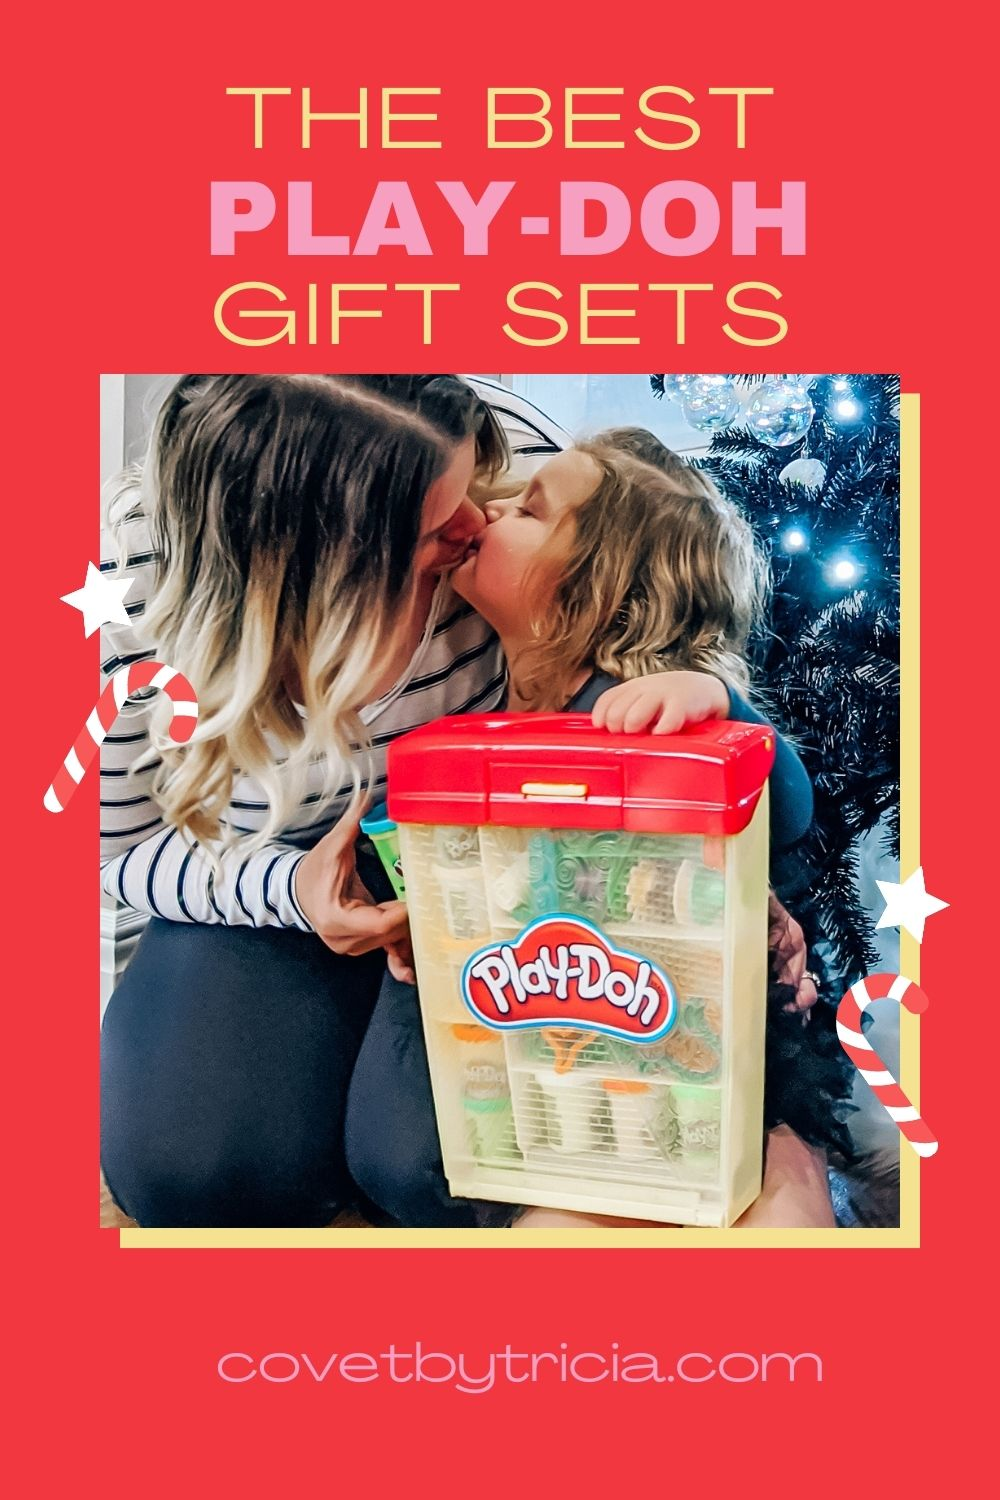 Play-Doh Gift Sets - Play-Doh Large Tools and Storage Activity Set - Play-Doh Sets at Walmart - Christmas Gifts for Kids 2020 #playdoh #walmart #giftideas